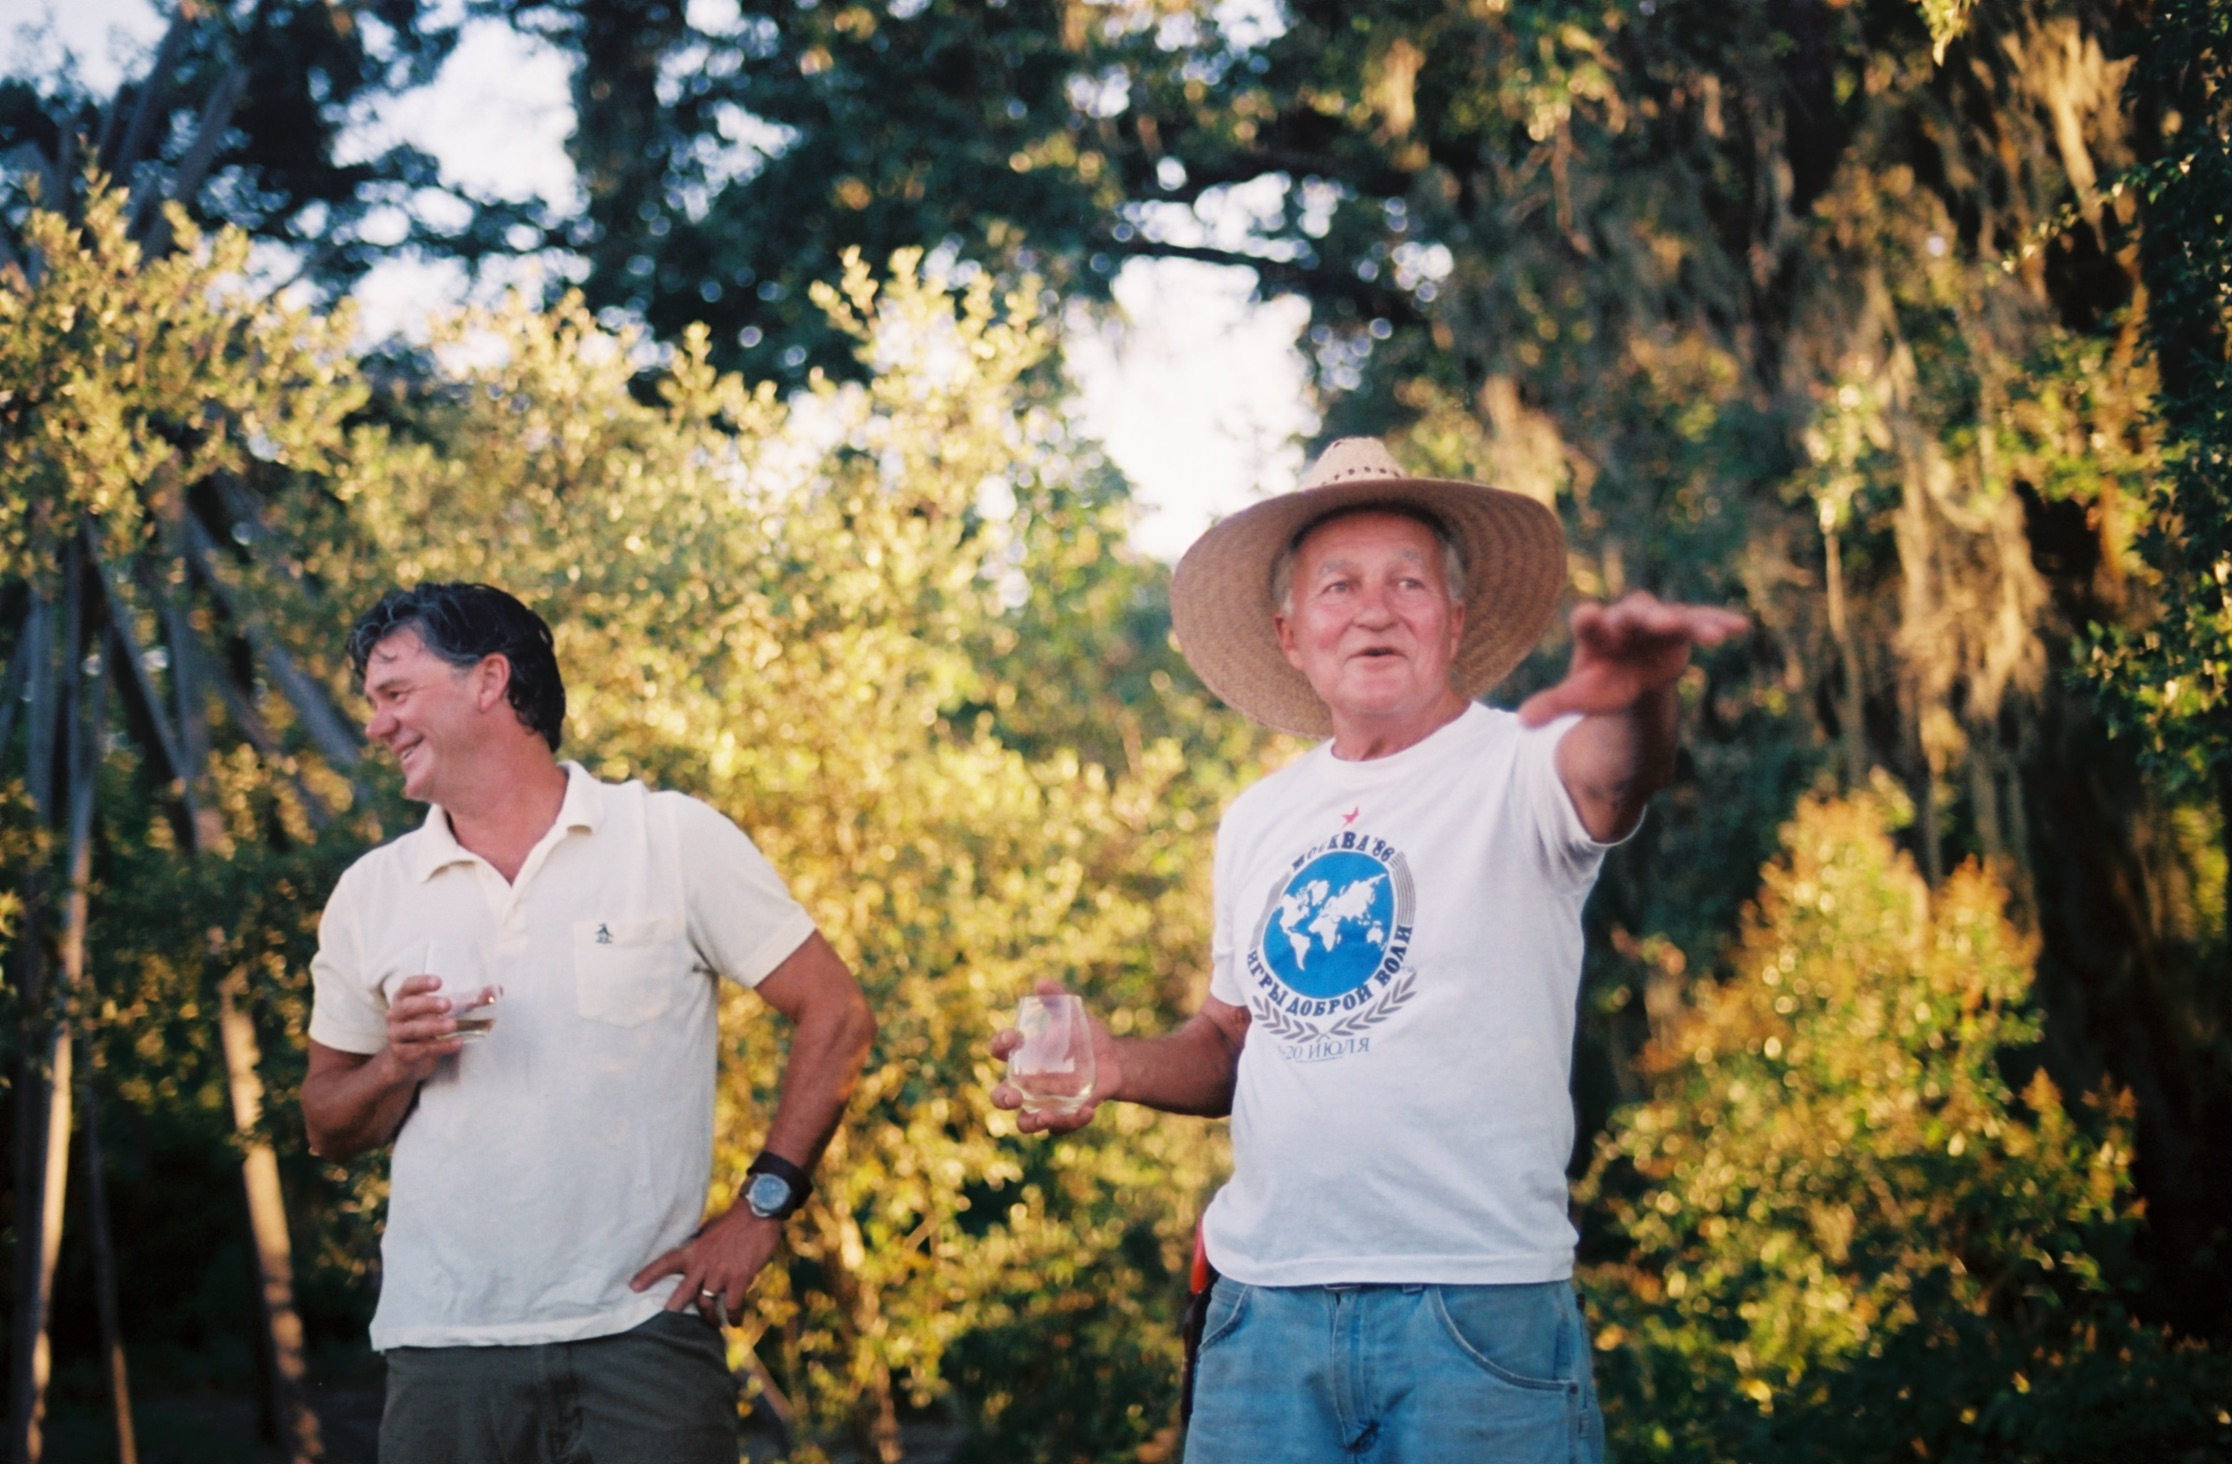 Ken Boek (right)'Father Earth' - has been working on the vineyard over twenty years and knows everything there is about mother nature. #35mm #film